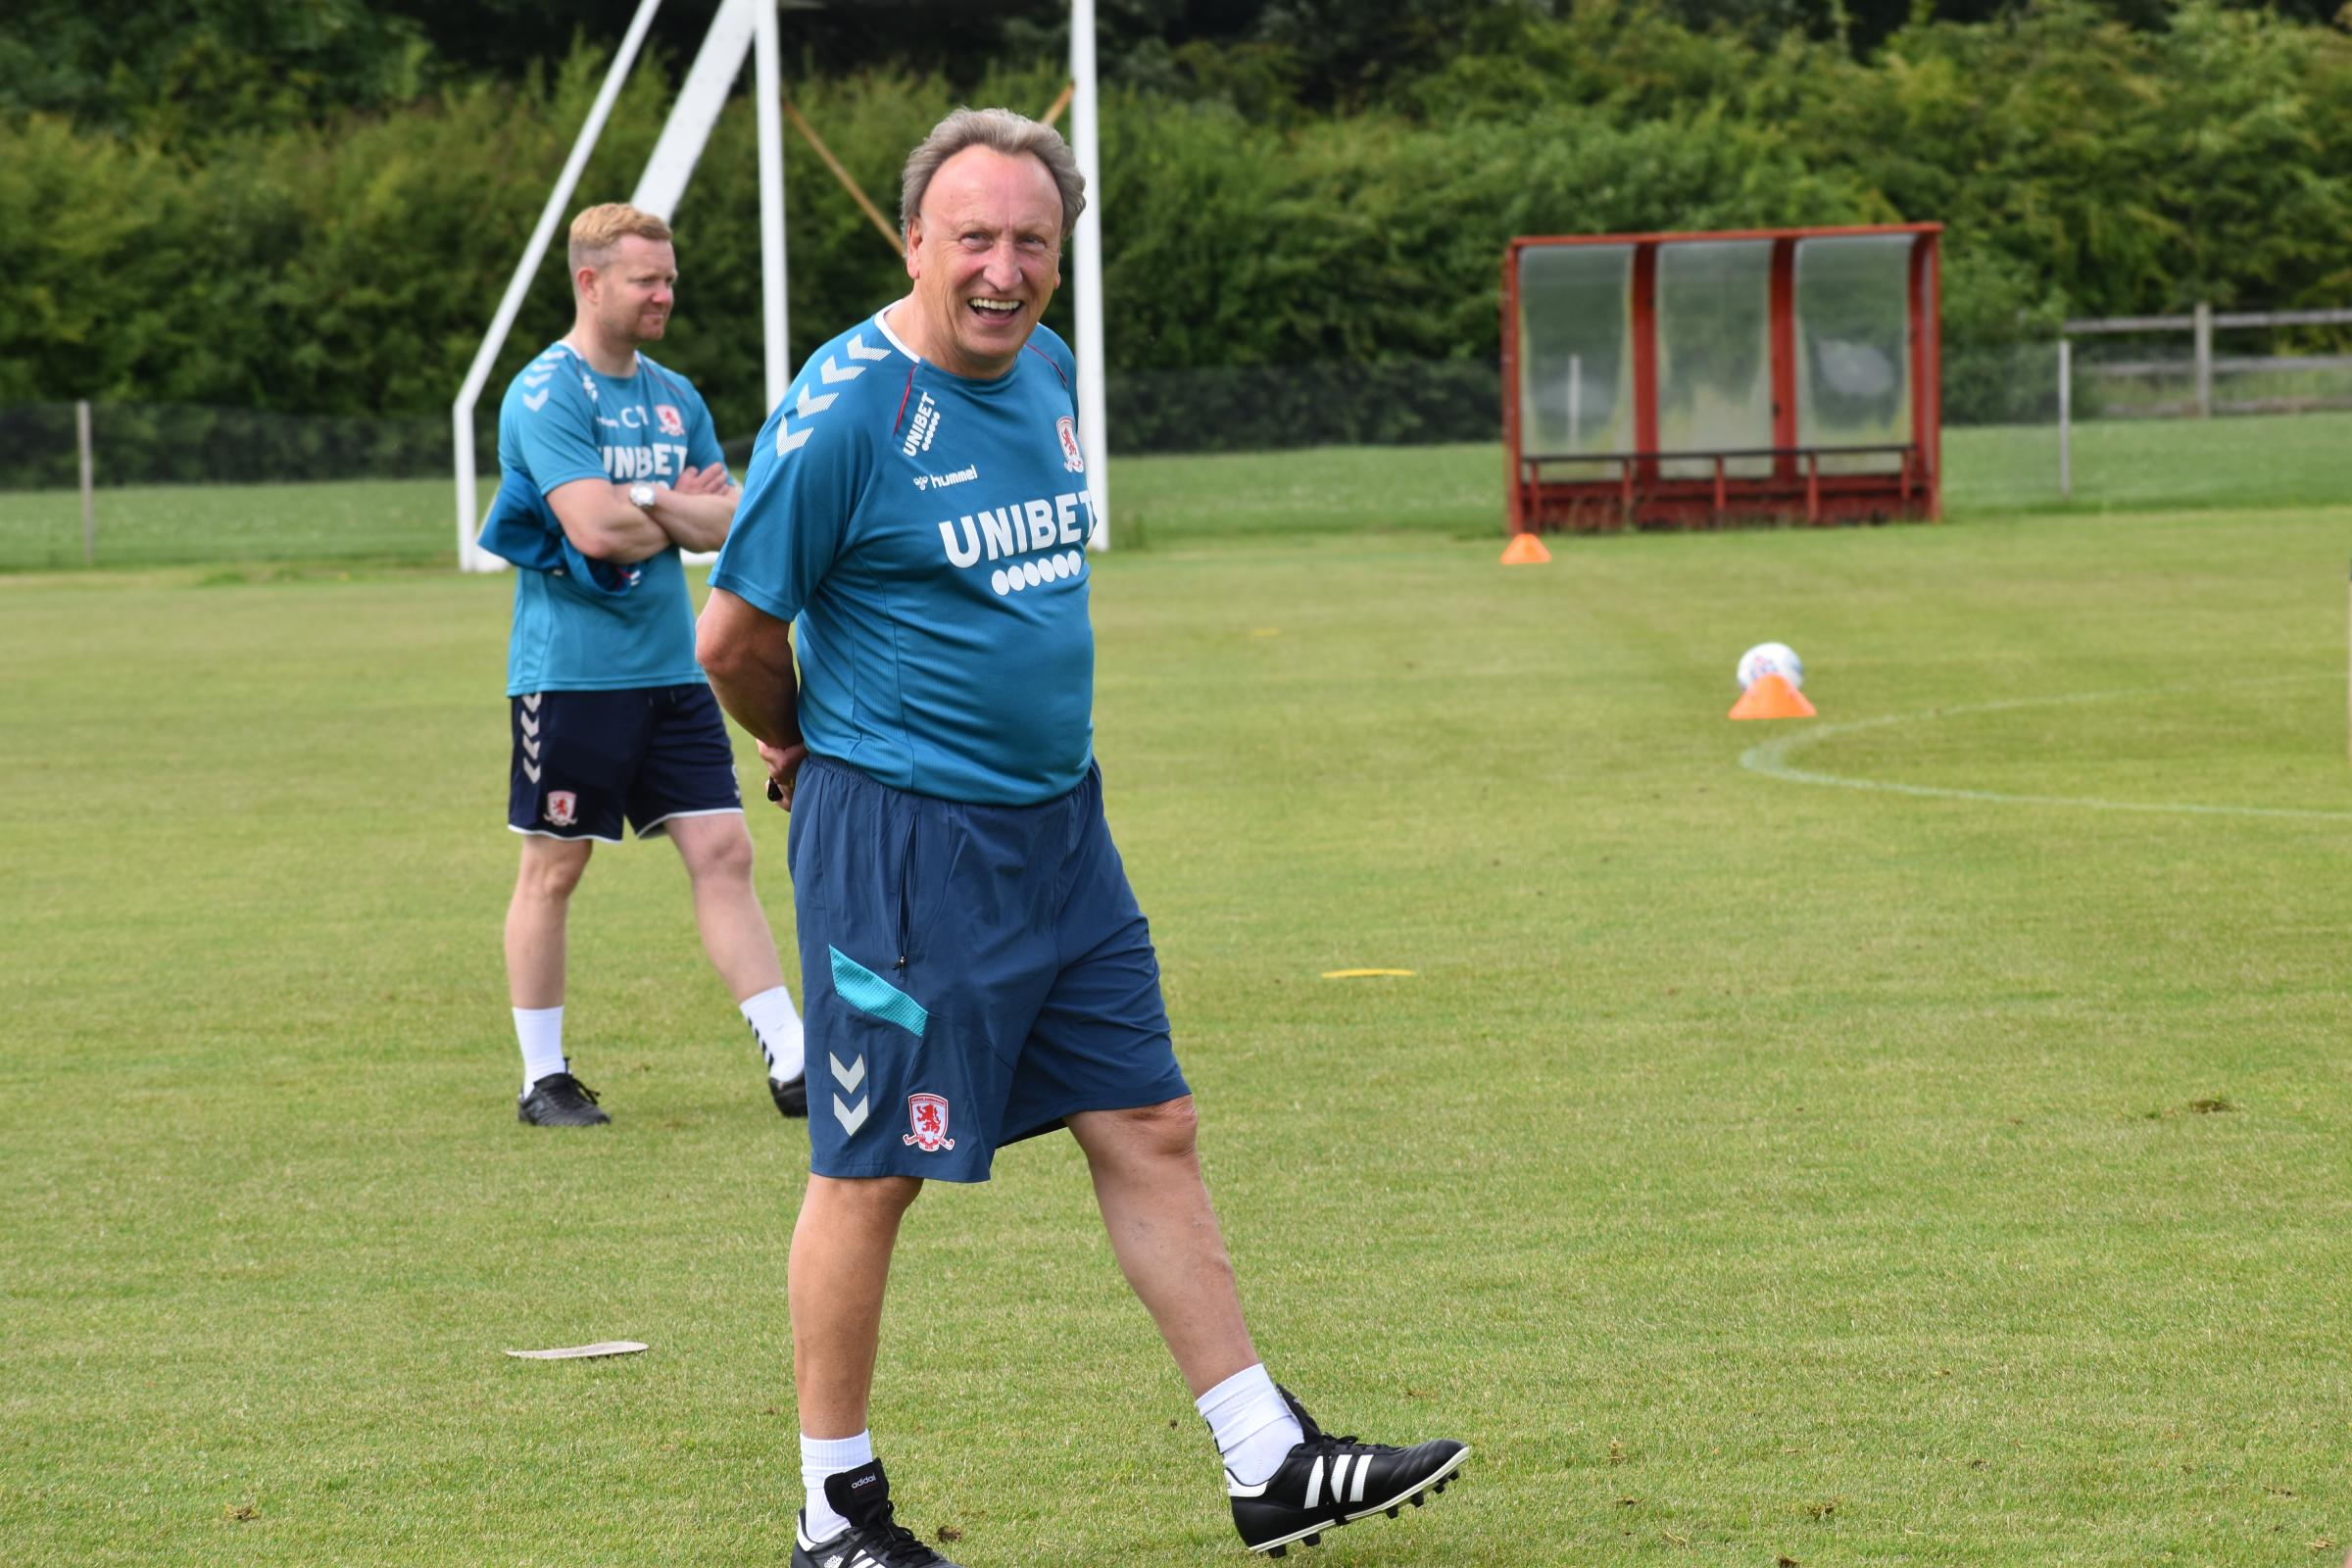 Middlesbrough boss Neil Warnock hoping to make a signing this week